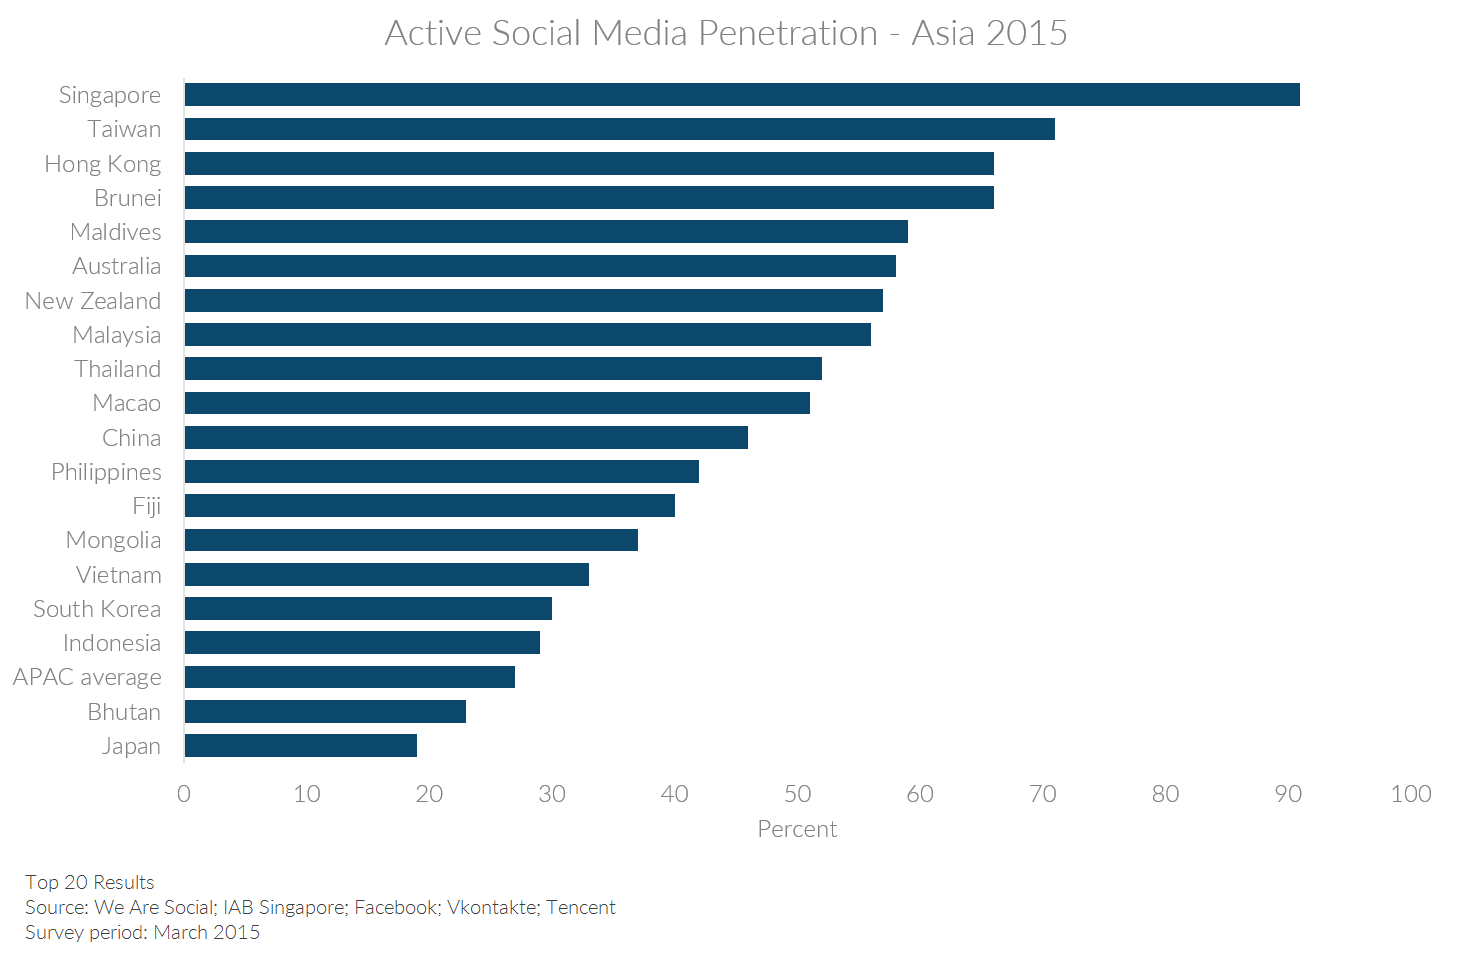 Chart showing active social media penetration in select Asian countries